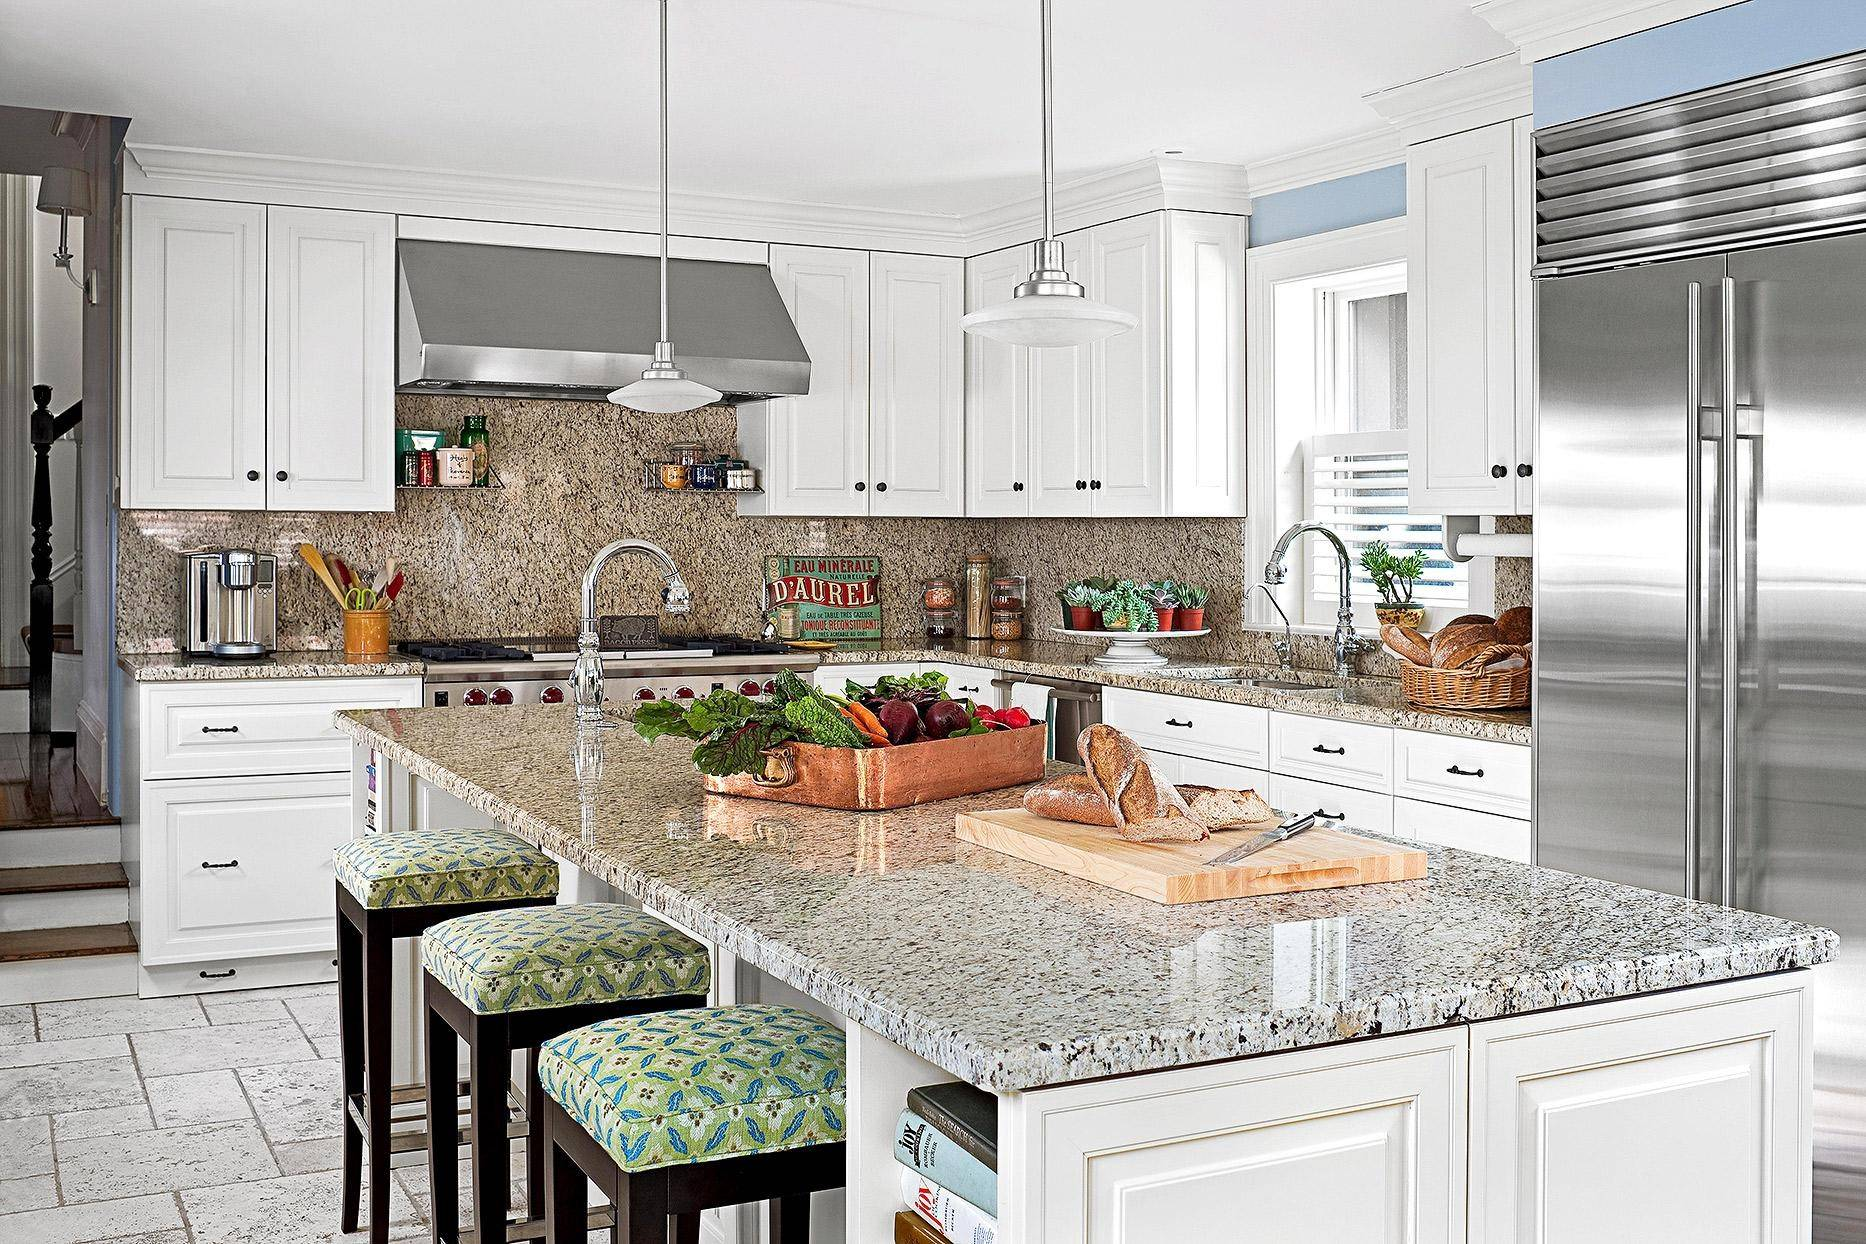 speckled granite kitchen island with colorful stools